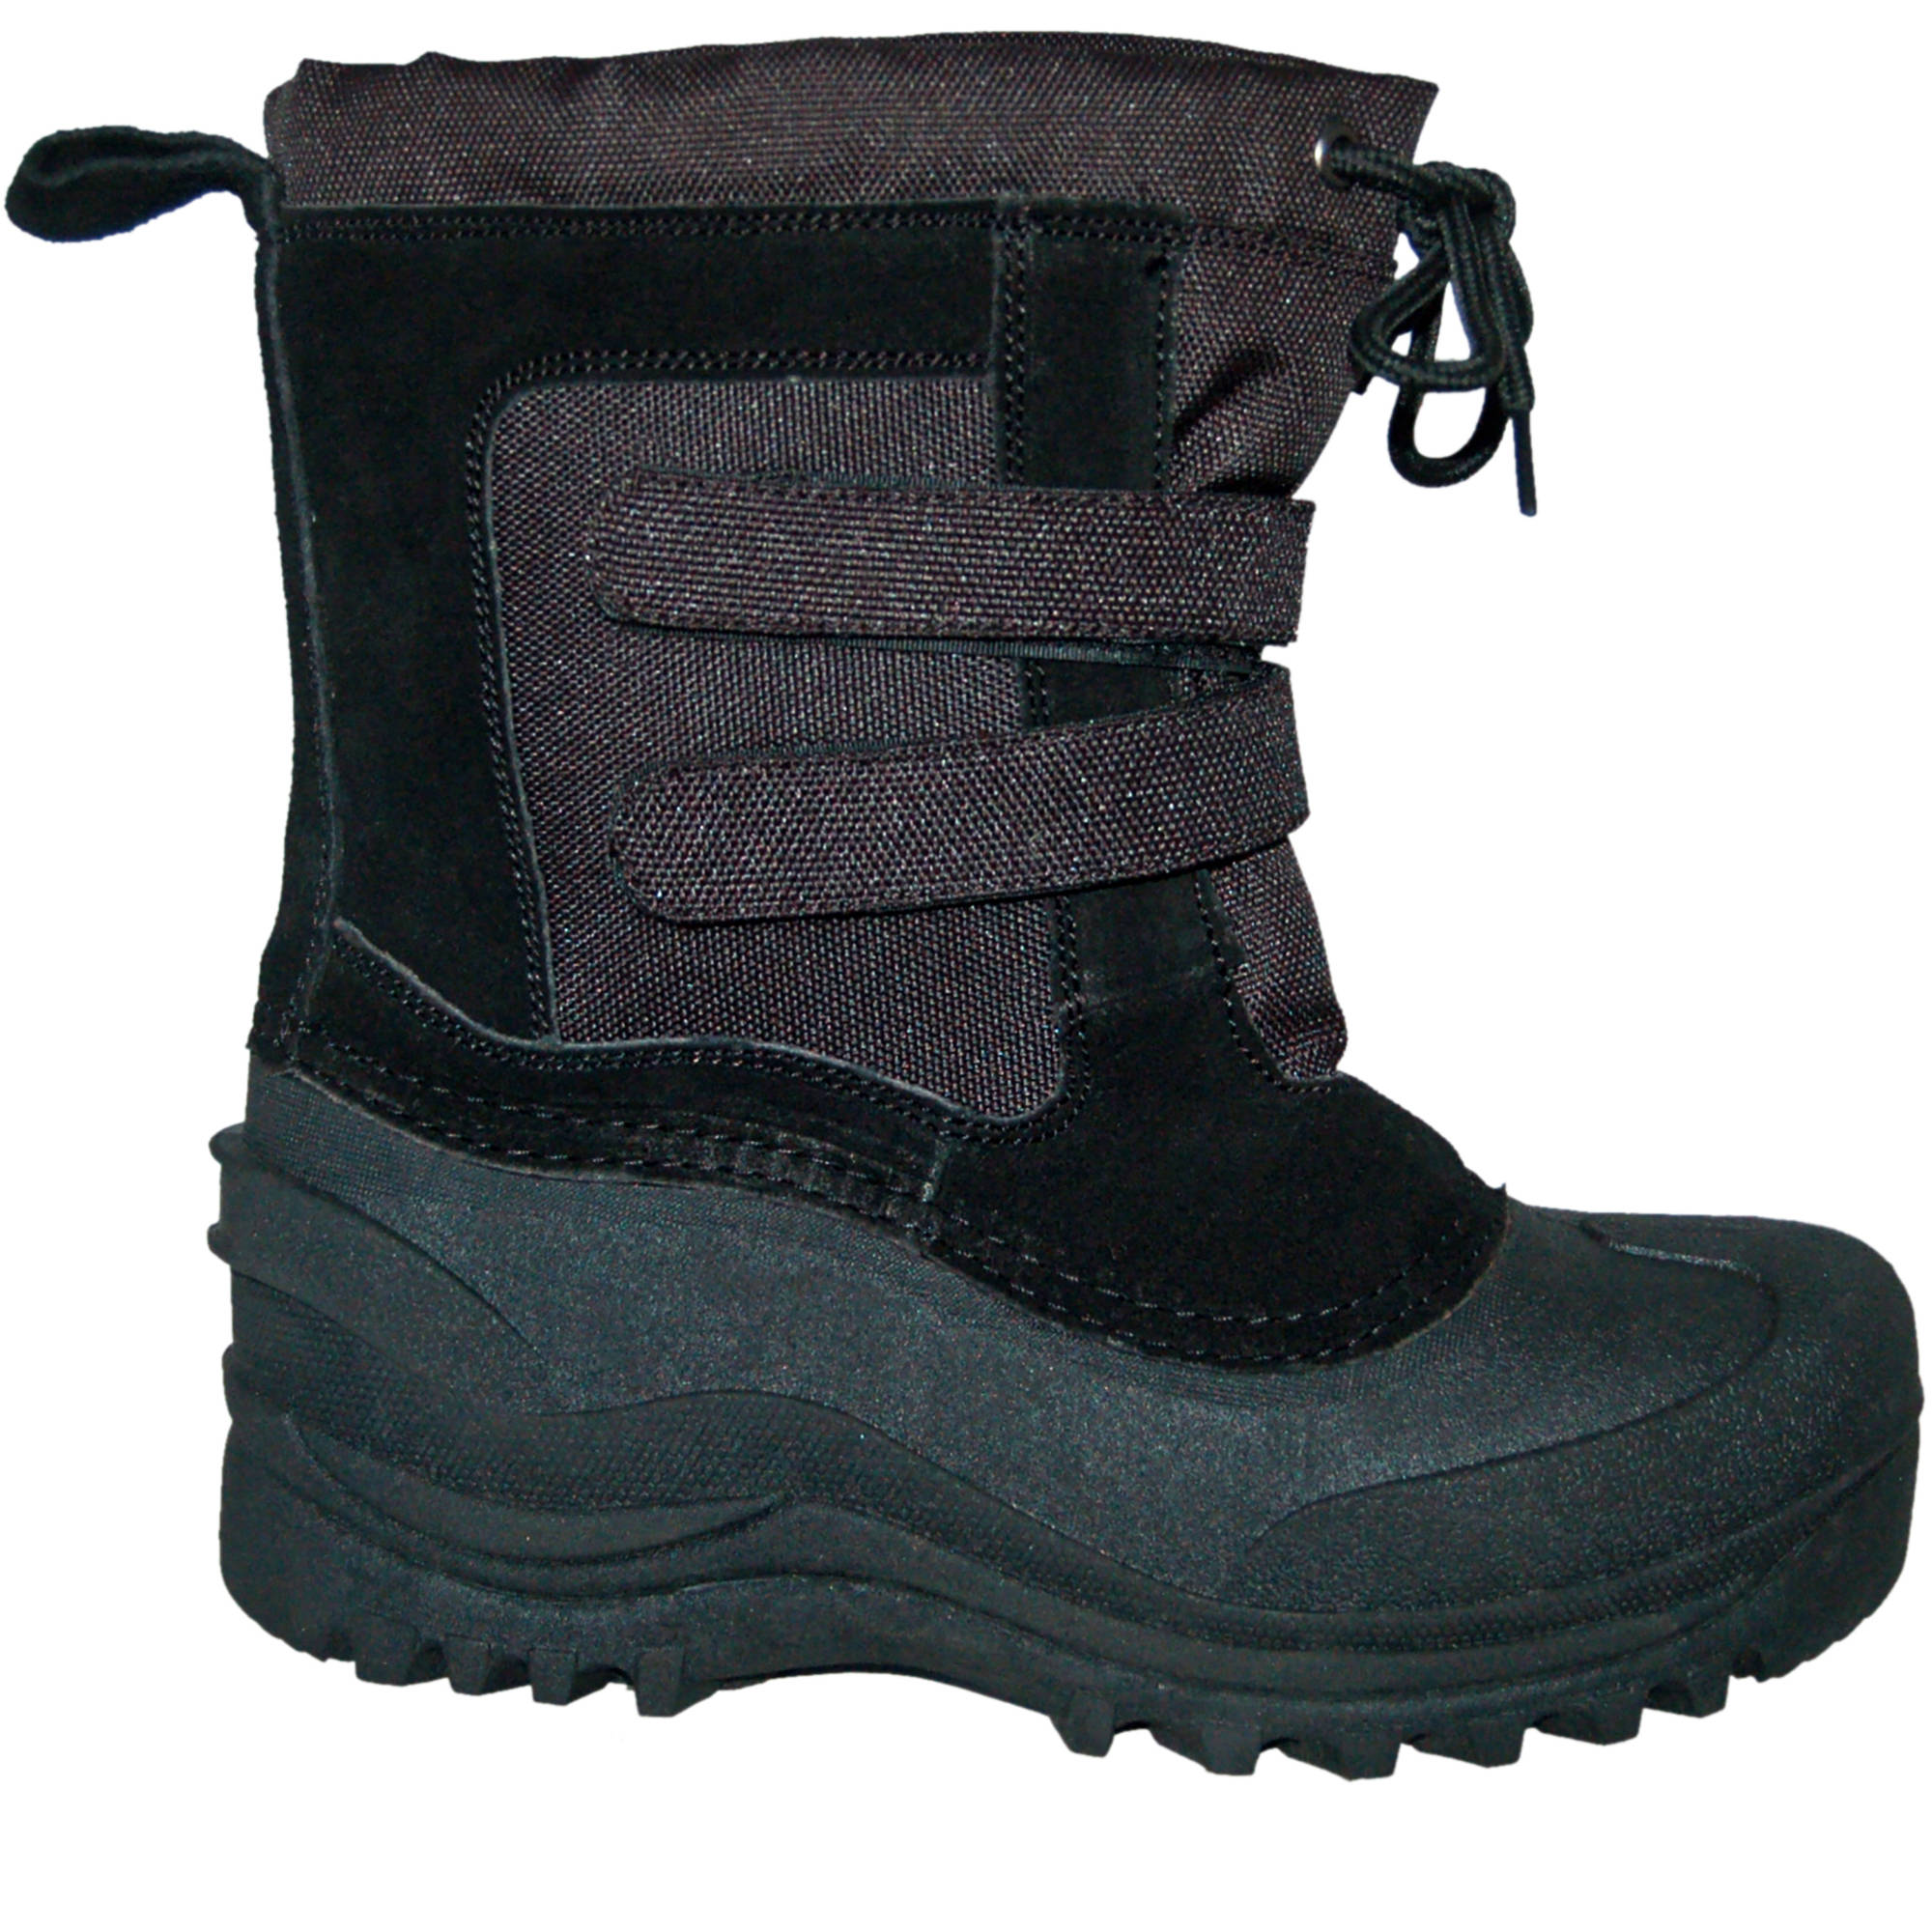 Kids Snow Boots Clearance eUNuJWPs